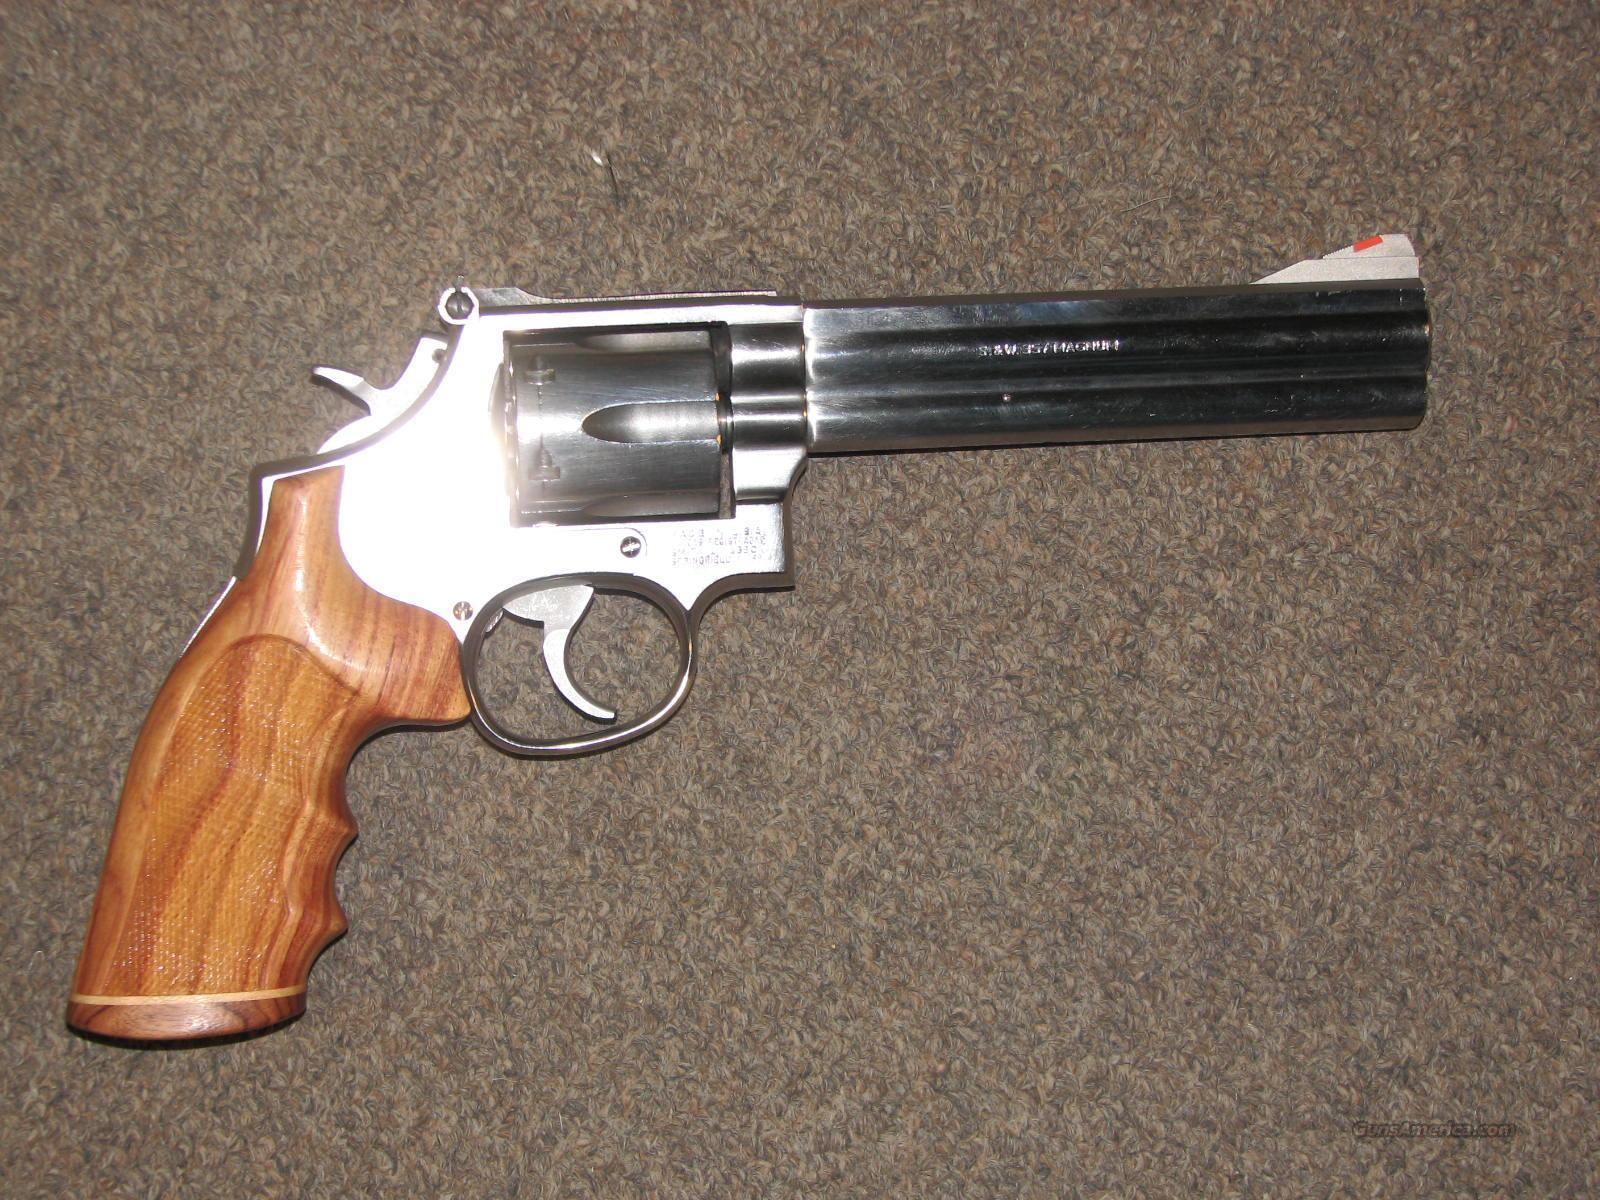 SMITH & WESSON 686 SS  357 MAG w/ CUSTOM GRIPS for sale